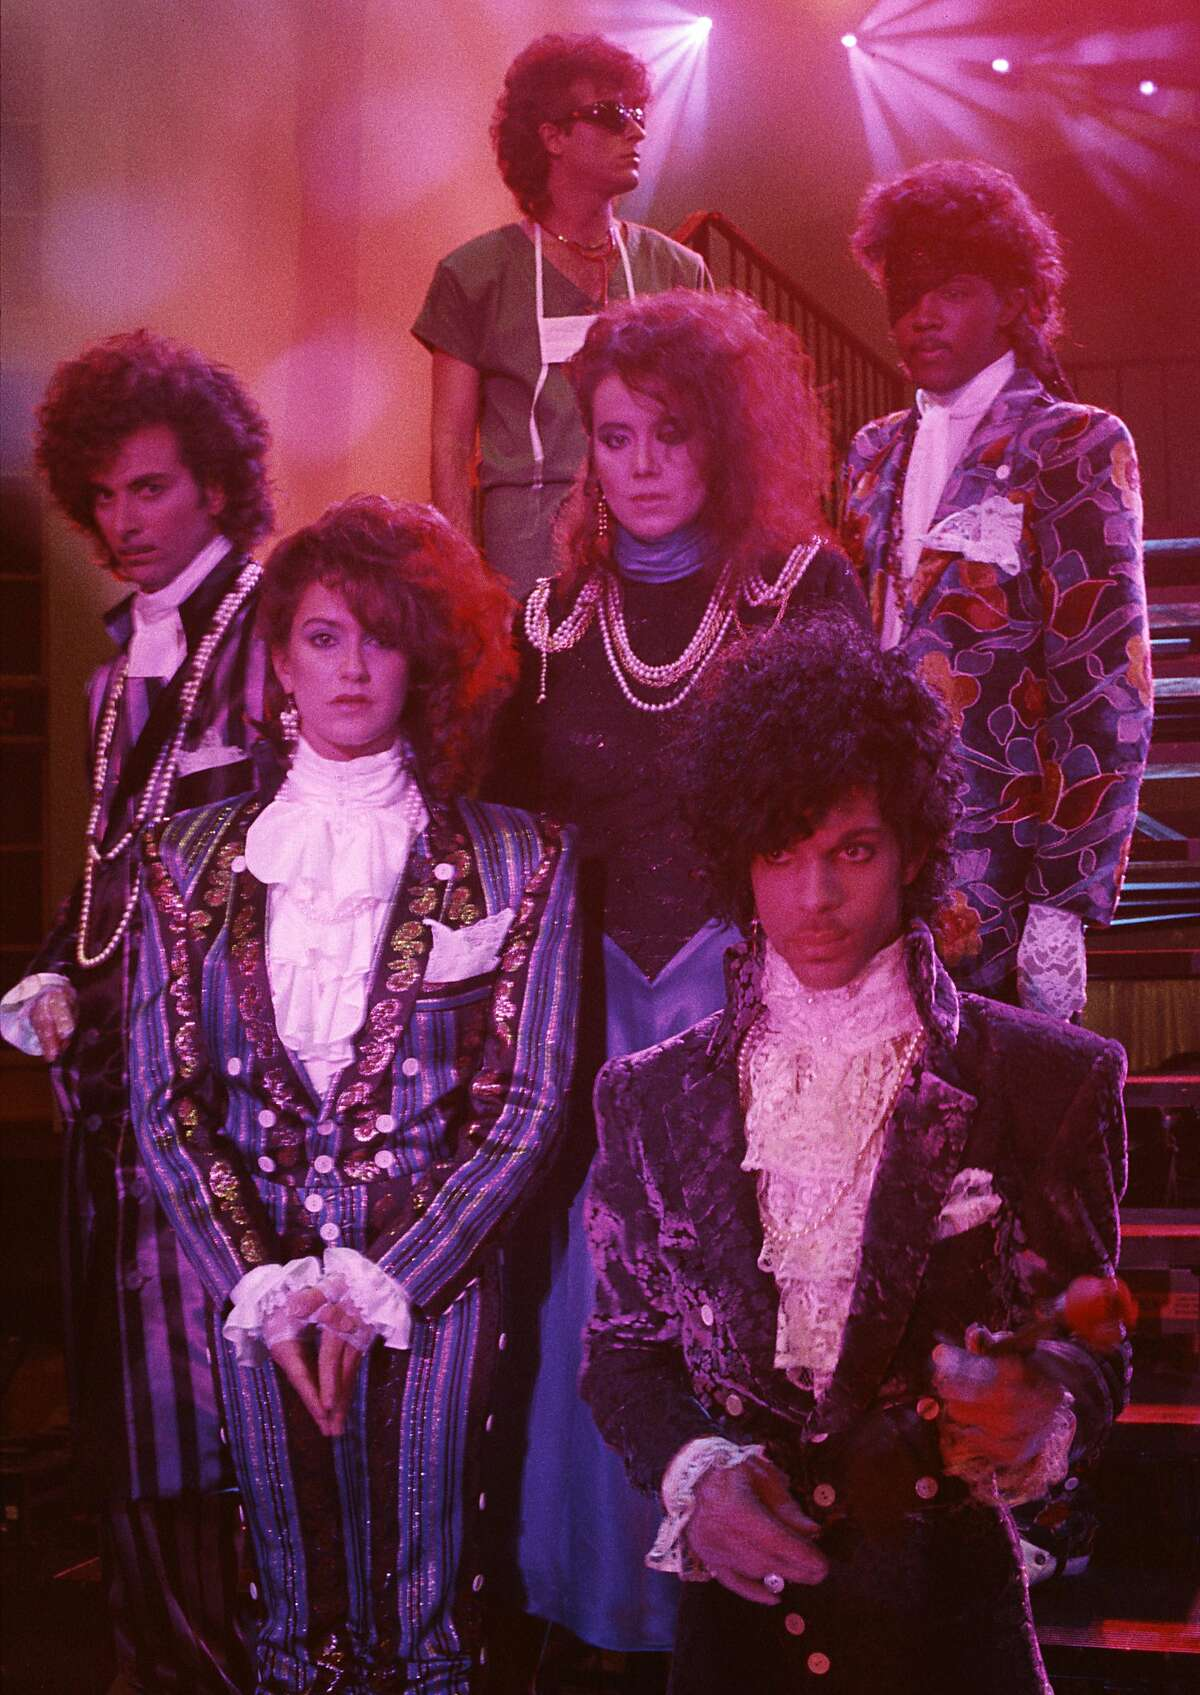 The Revolution was the backing band for Prince in the 1980s. The band included�guitarist Wendy Melvoin, bassist Brown Mark (Mark Brown), drummer Bobby Z (Robert Rivkin) and keyboardists Matt Fink and Lisa Coleman. They played on such albums as Purple Rain and 1999. After Prince's death in 2016, the band reunited for a tour in 2017.